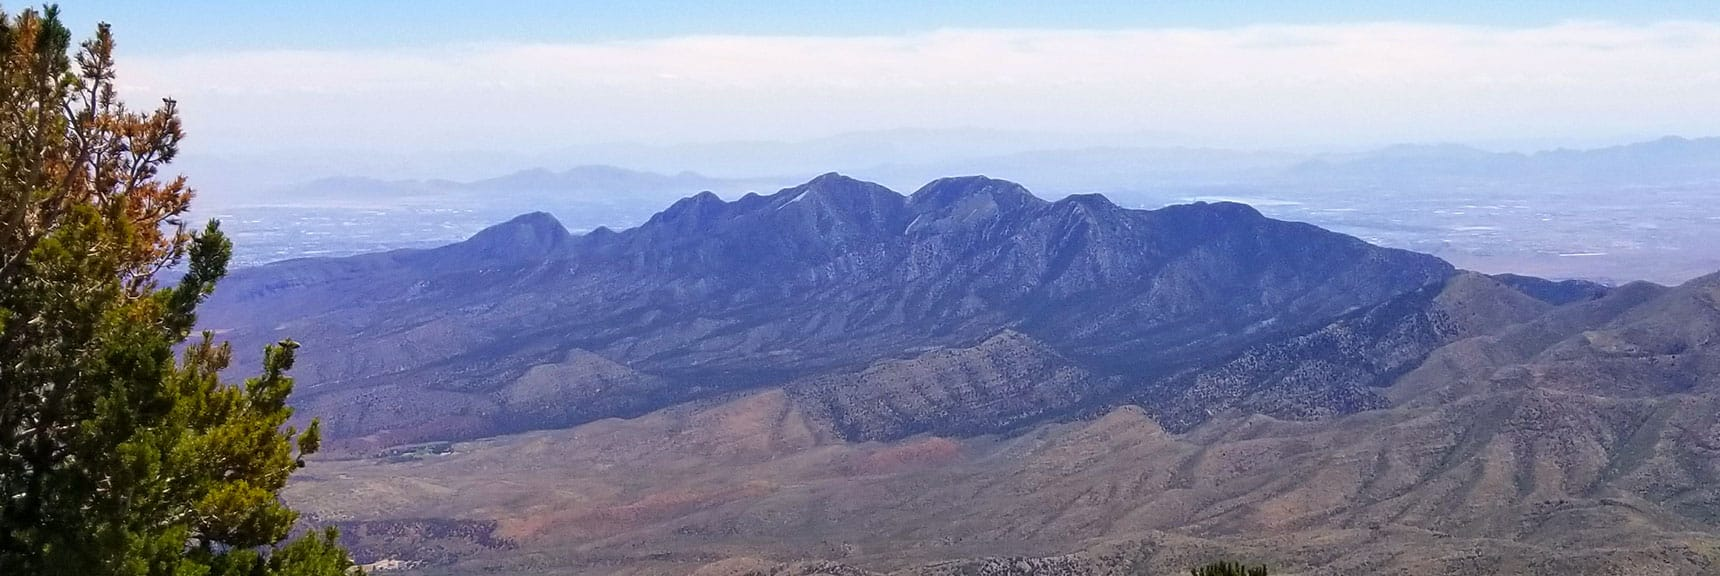 La Madre Mt. Viewed from Harris Mountain Summit